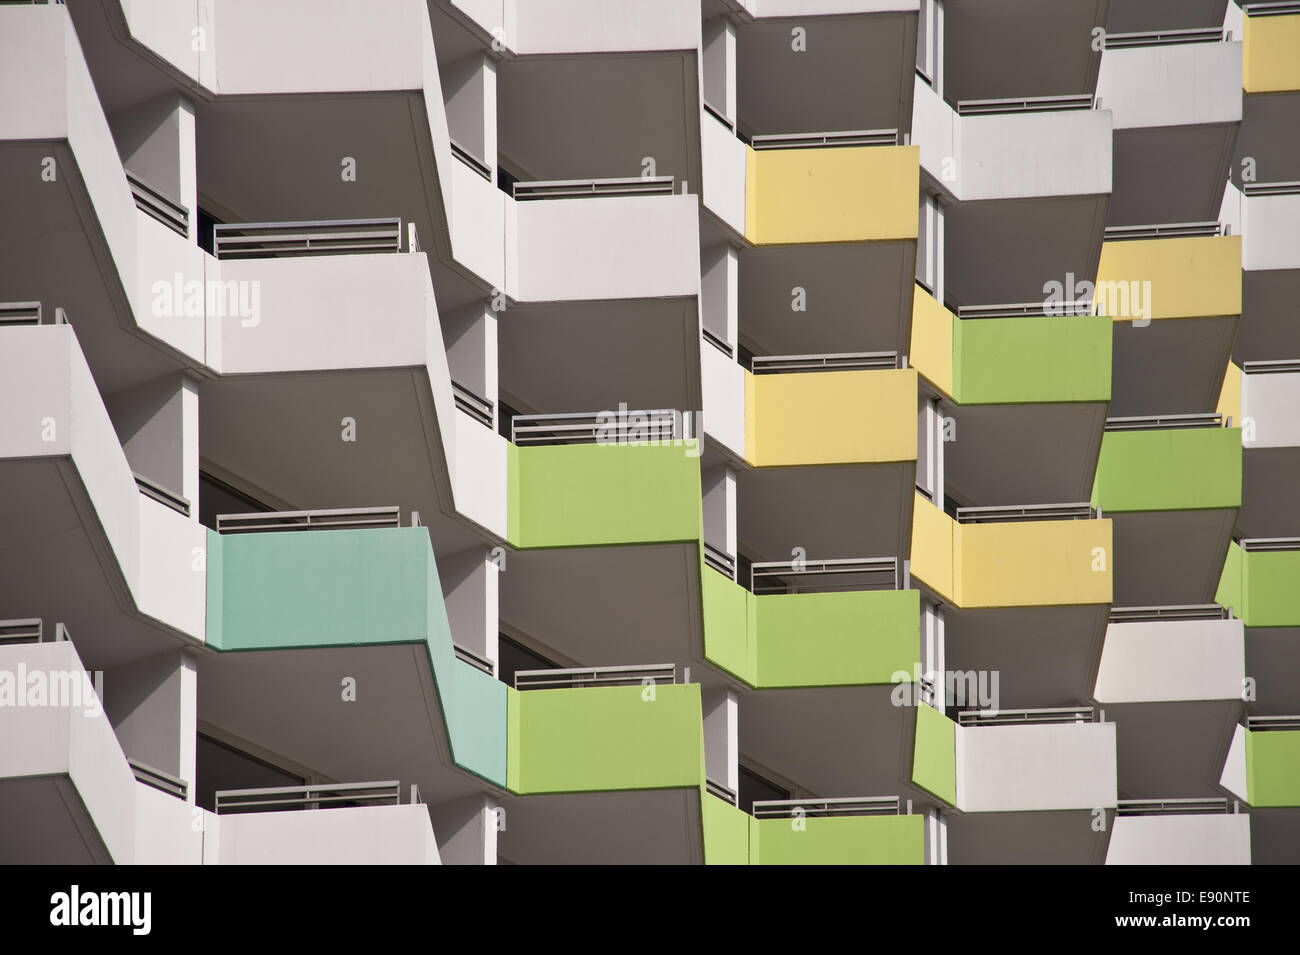 high riser - Stock Image